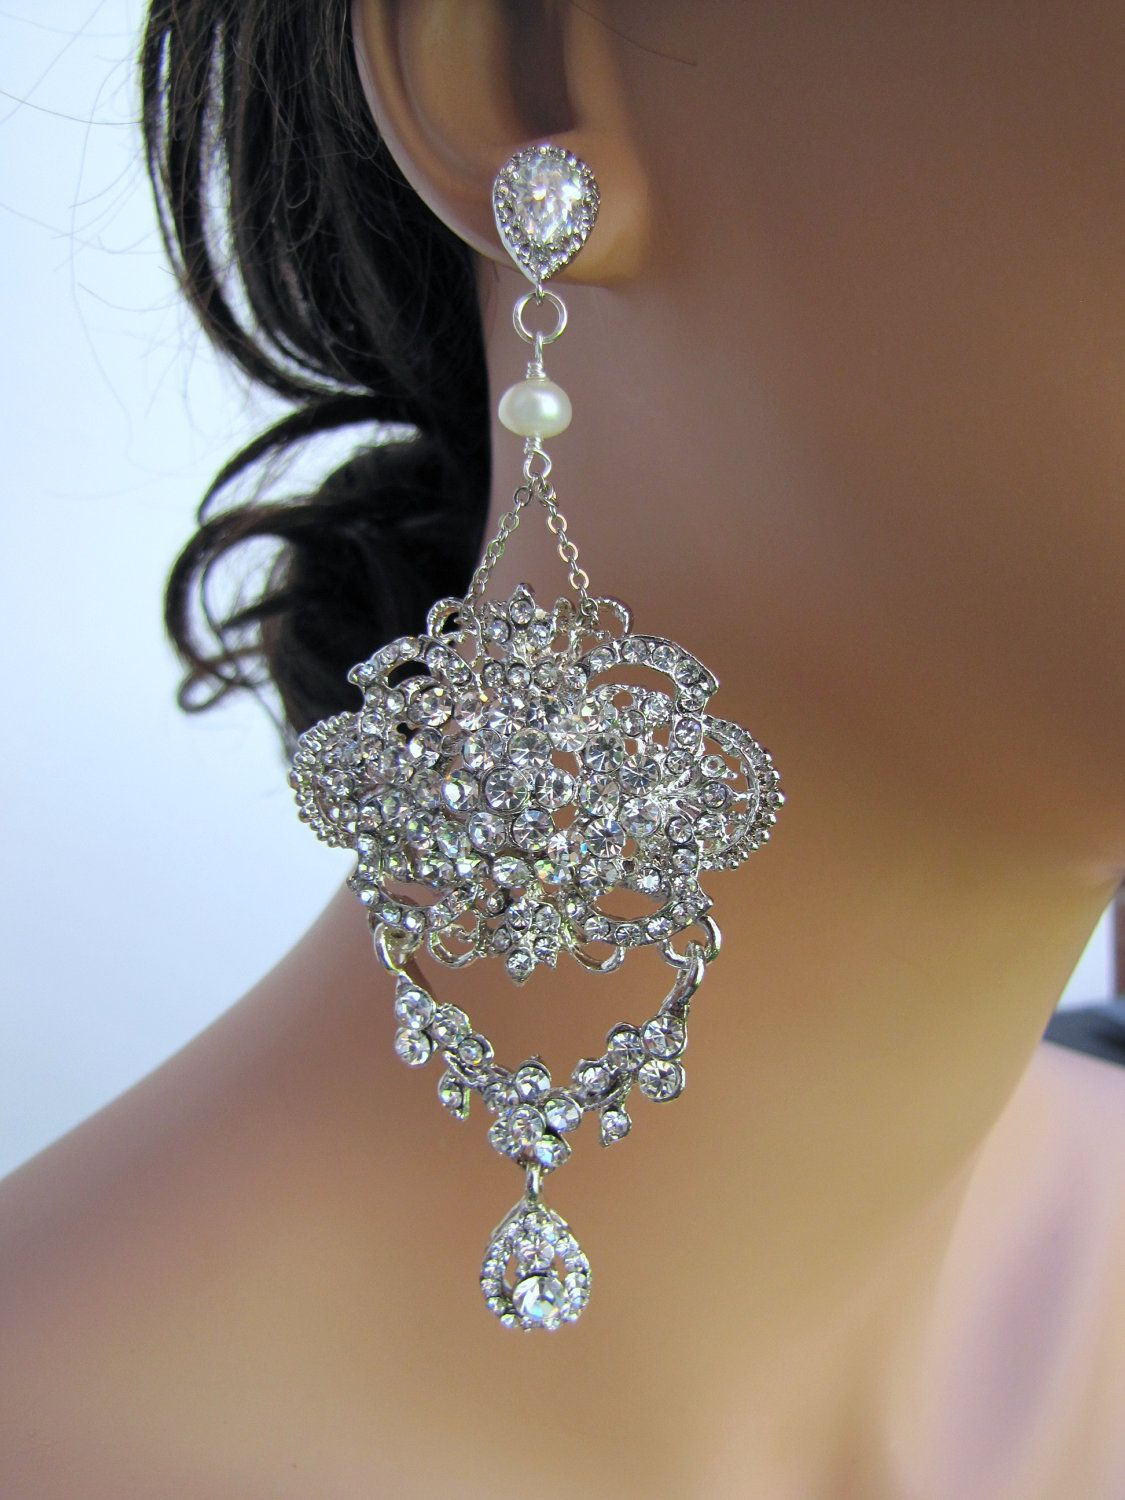 980ce95ca1d049 Bridal chandelier earrings, wedding statement earrings for brides, large  dangle earrings, rhinestones & cz sterling silver posts - Chelsea.